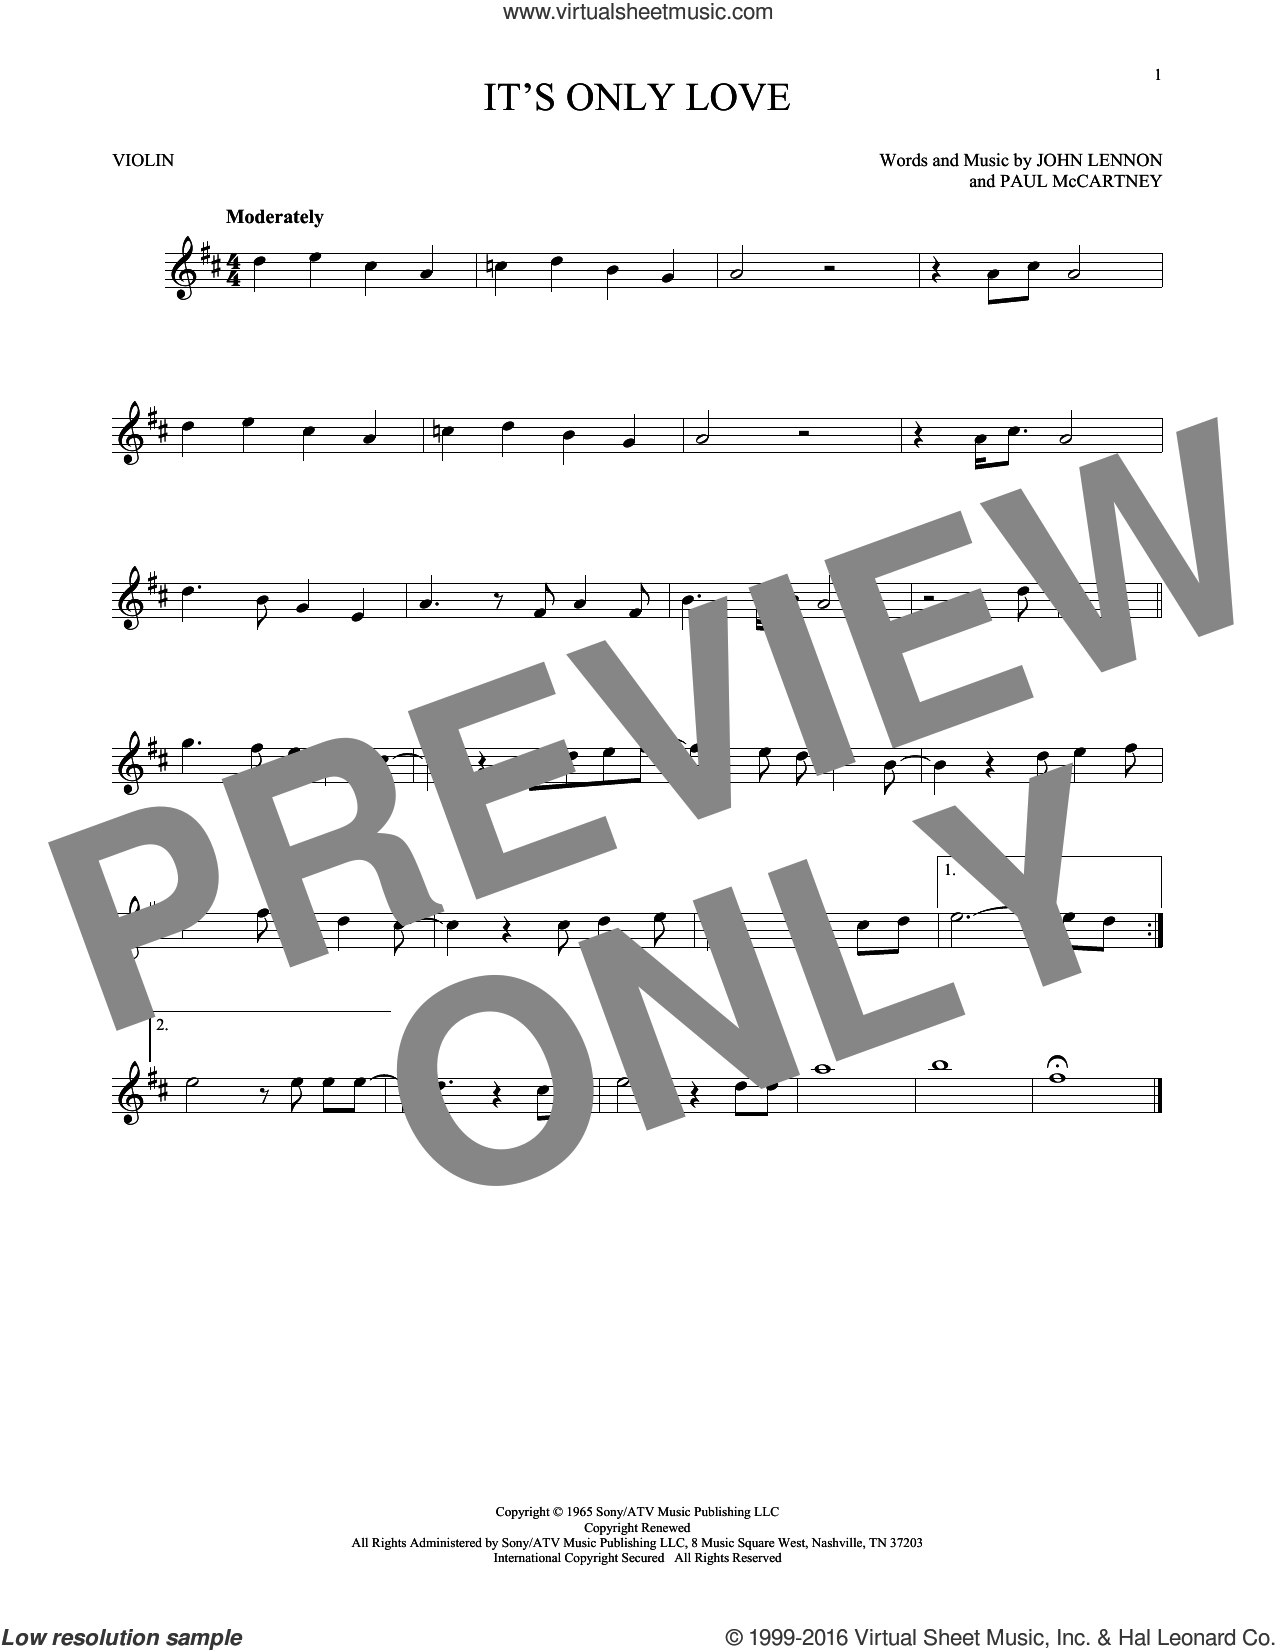 It's Only Love sheet music for violin solo by The Beatles, John Lennon and Paul McCartney, intermediate skill level